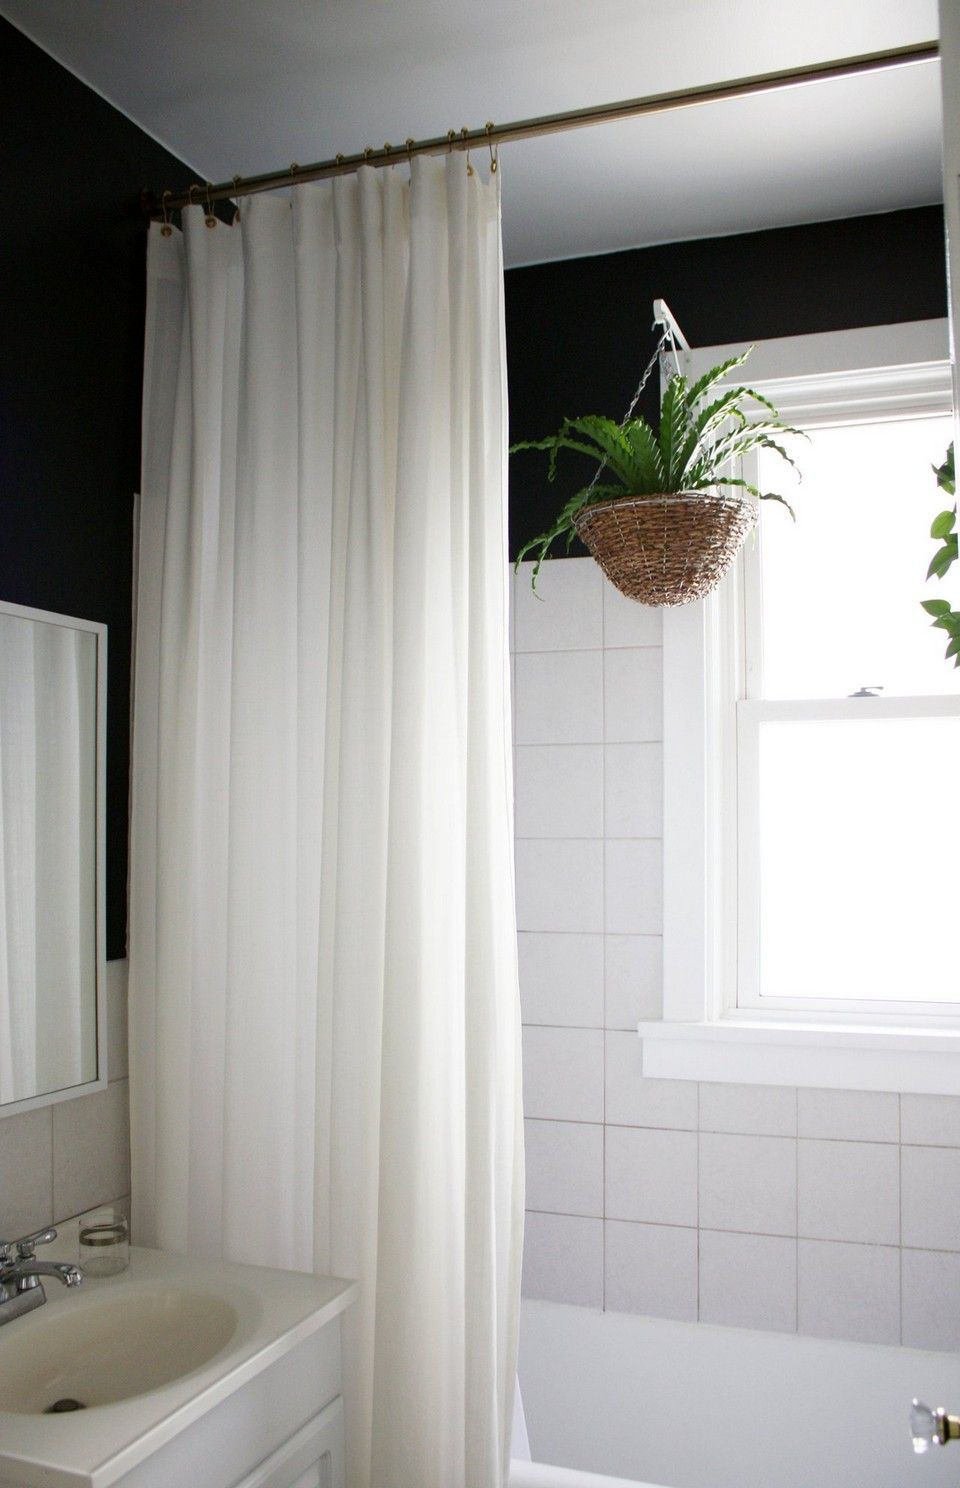 120 Unique And Modern Bathroom Shower Curtain Ideas Http Homecantuk Com 120 Unique Modern Bathroom Shower Curtain I Bathroom Upgrades Bathrooms Remodel Home